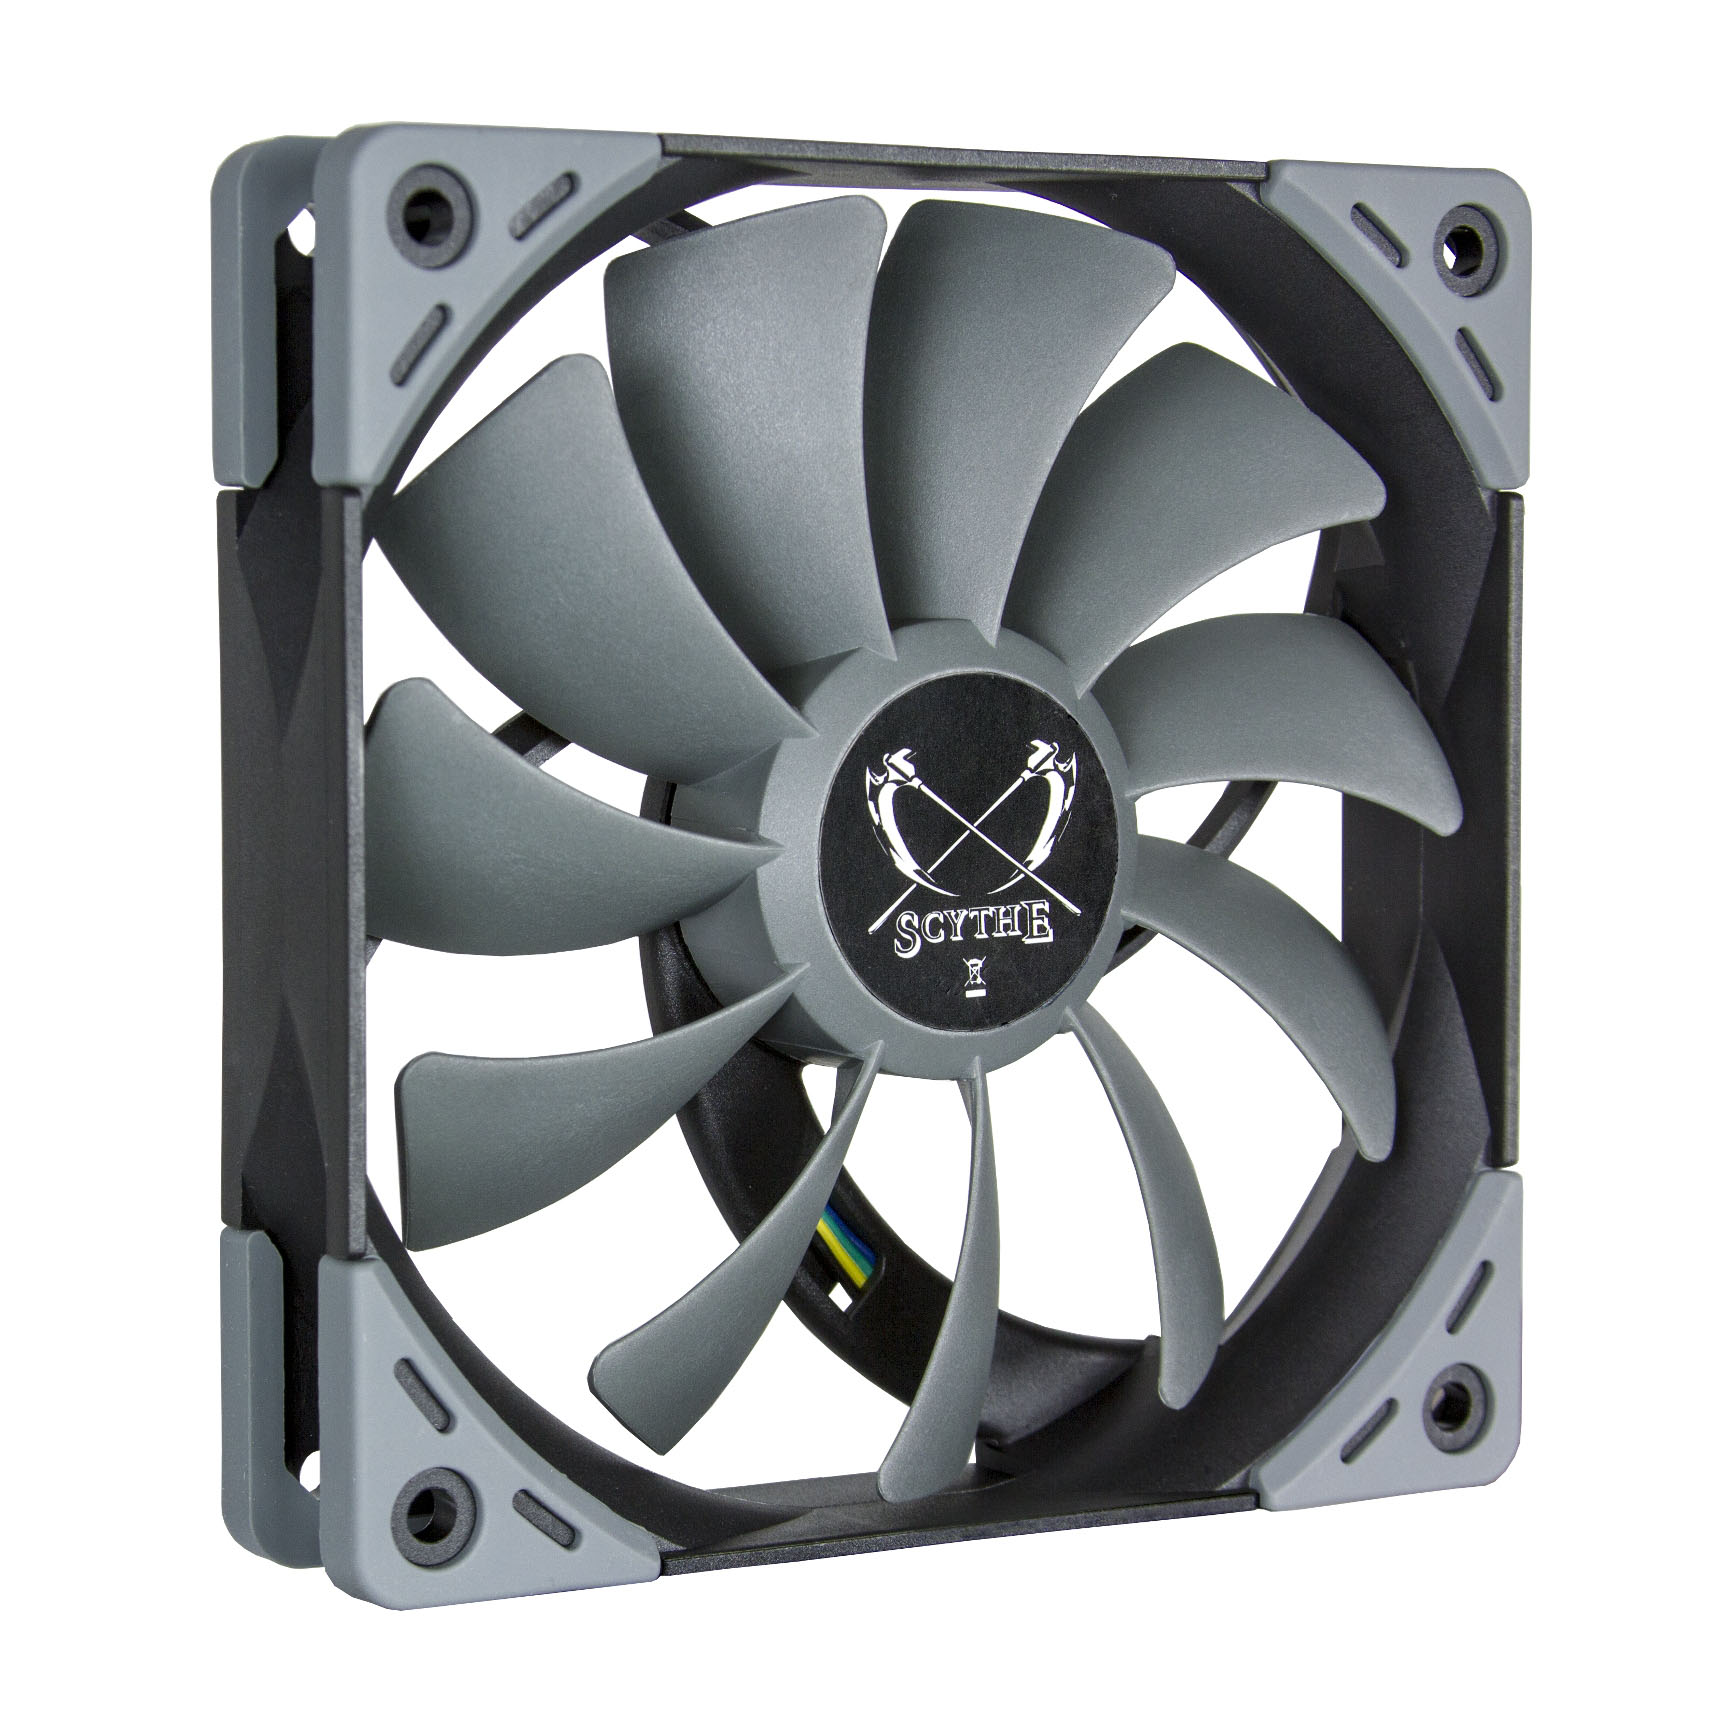 kaze-flex-120mm-pwm-main-fan.jpg